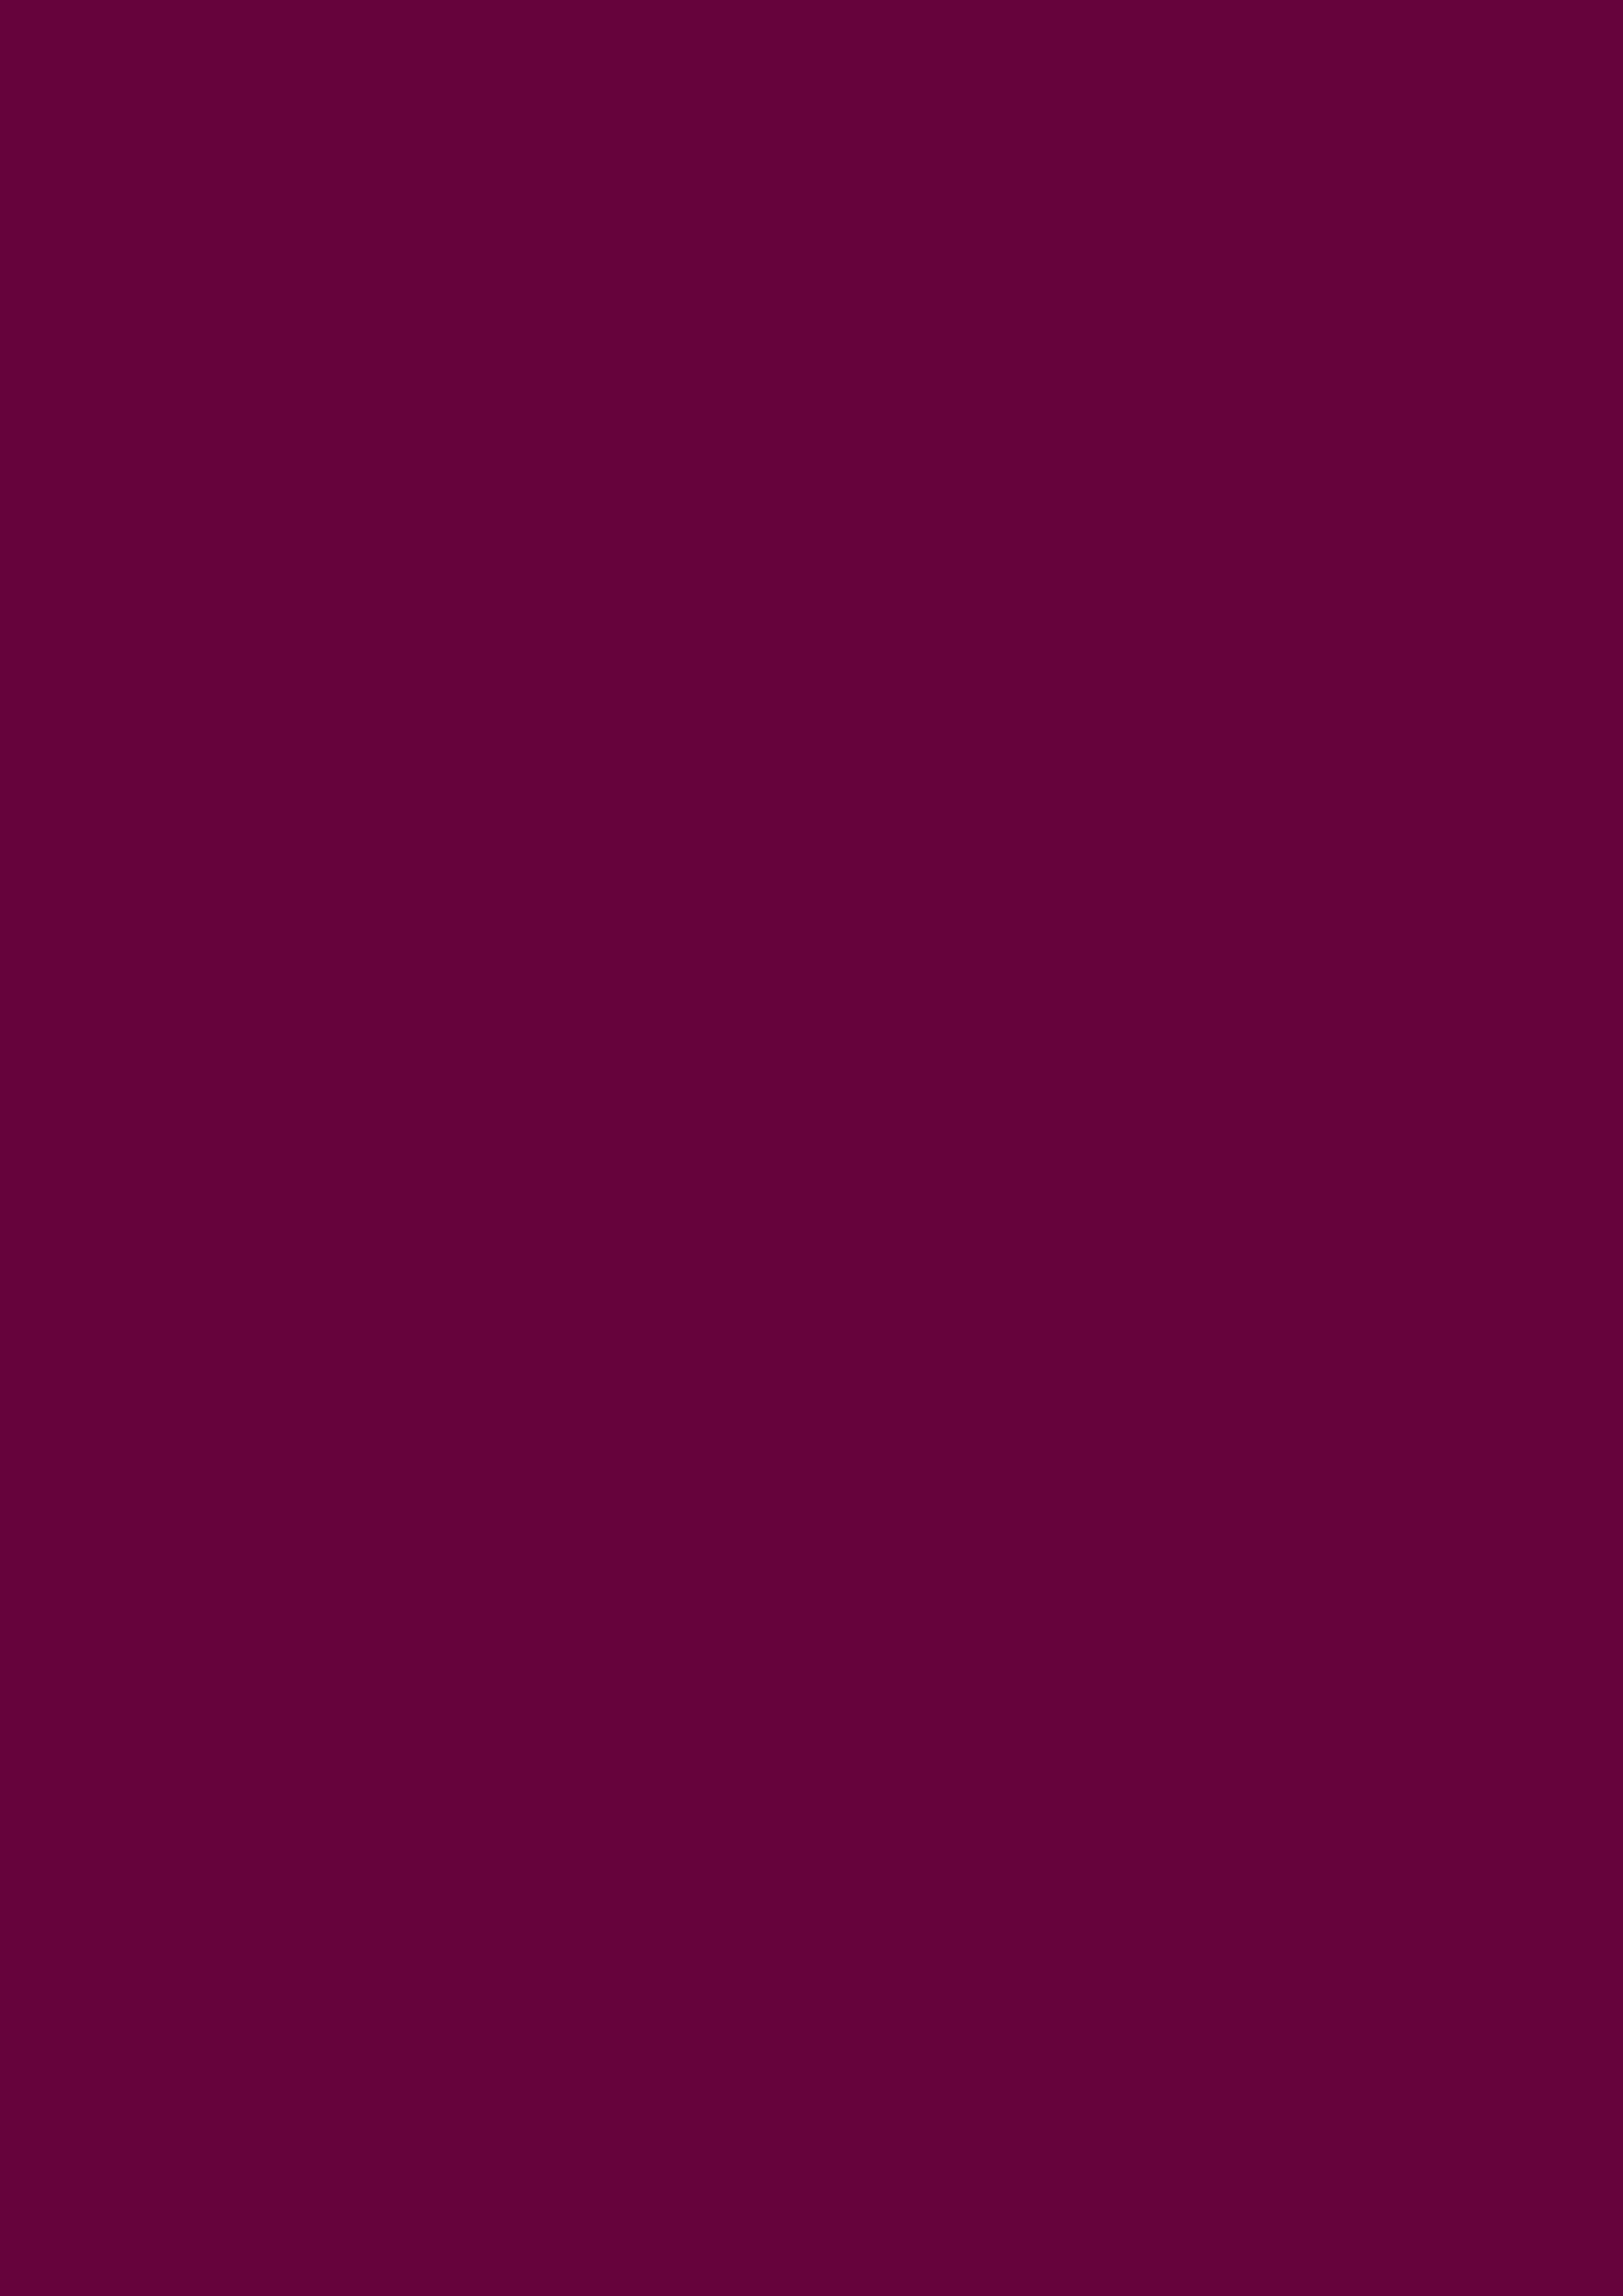 2480x3508 Imperial Purple Solid Color Background